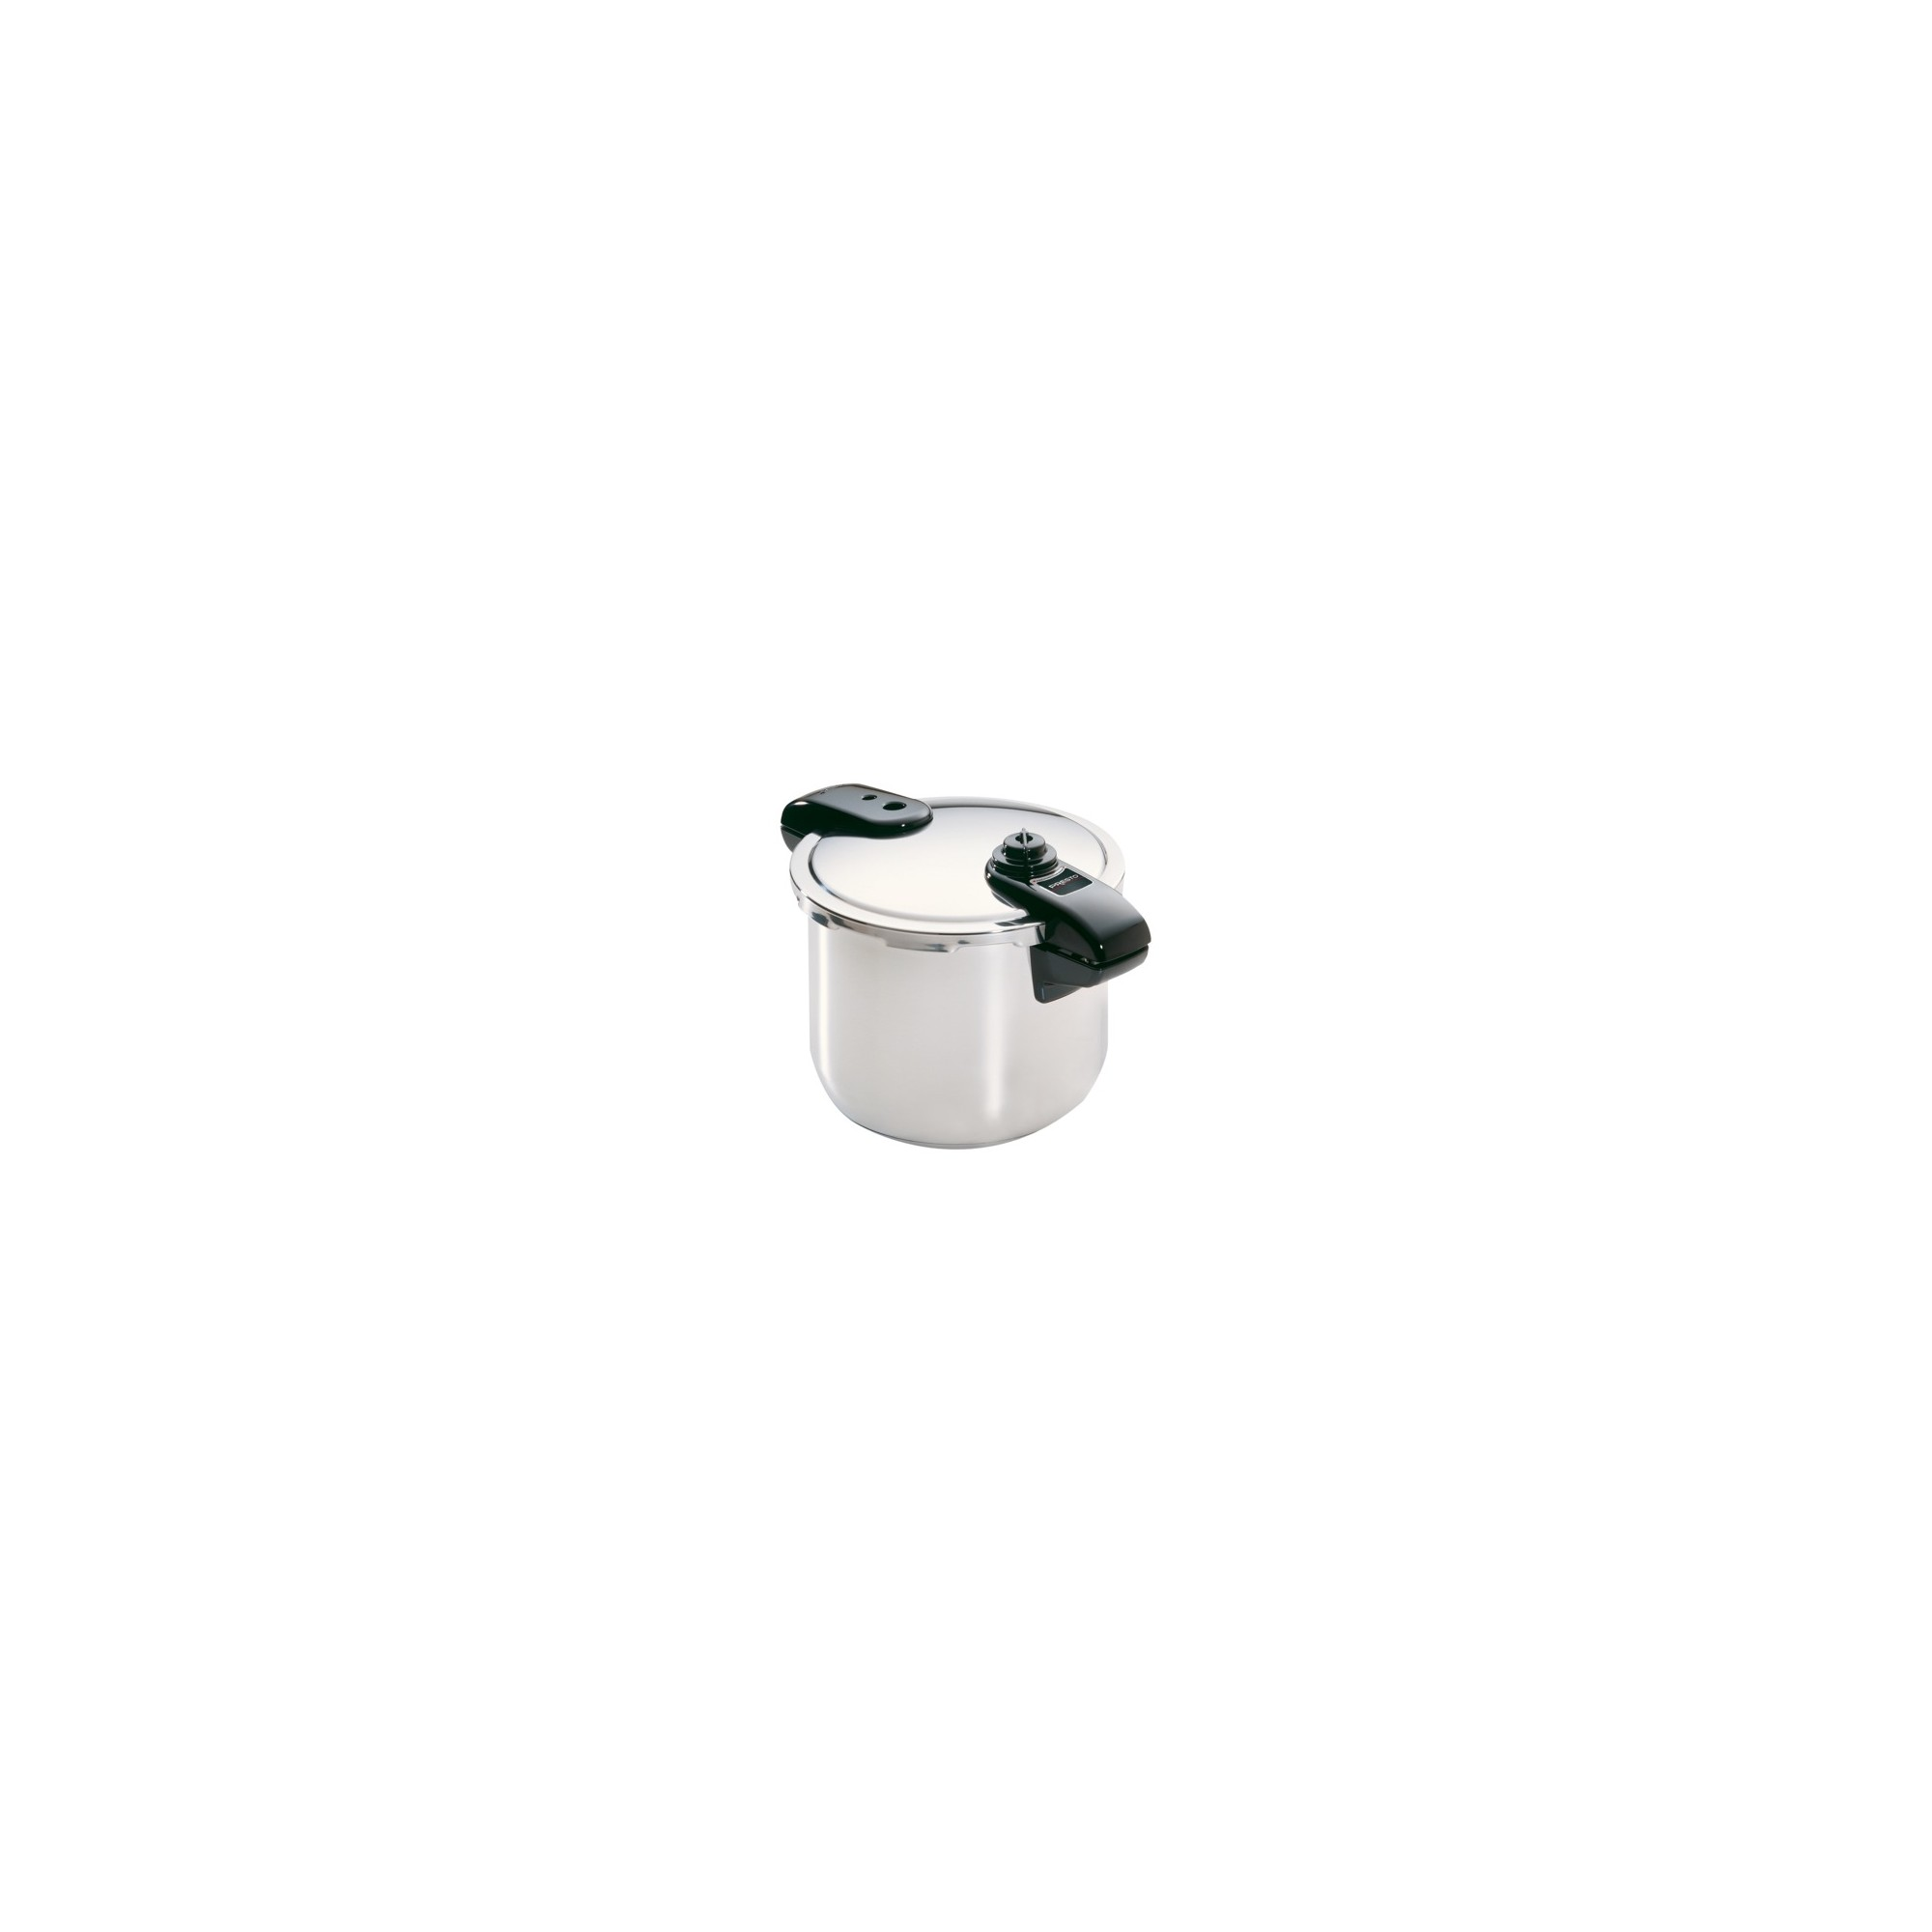 Presto 8qt Polished Stainless Steel Pressure Cooker